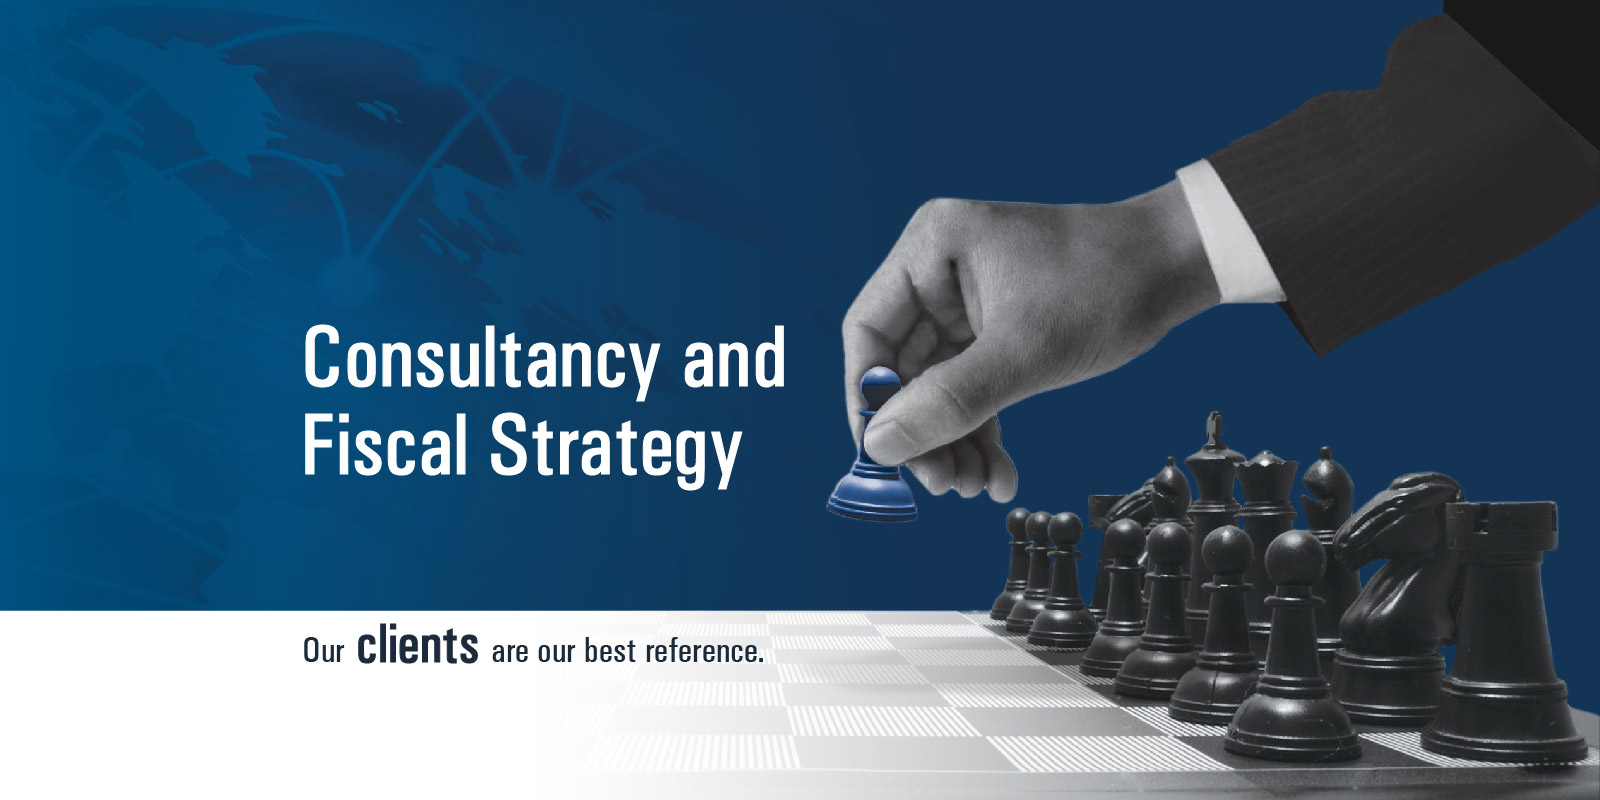 Consultancy and Fiscal Strategy